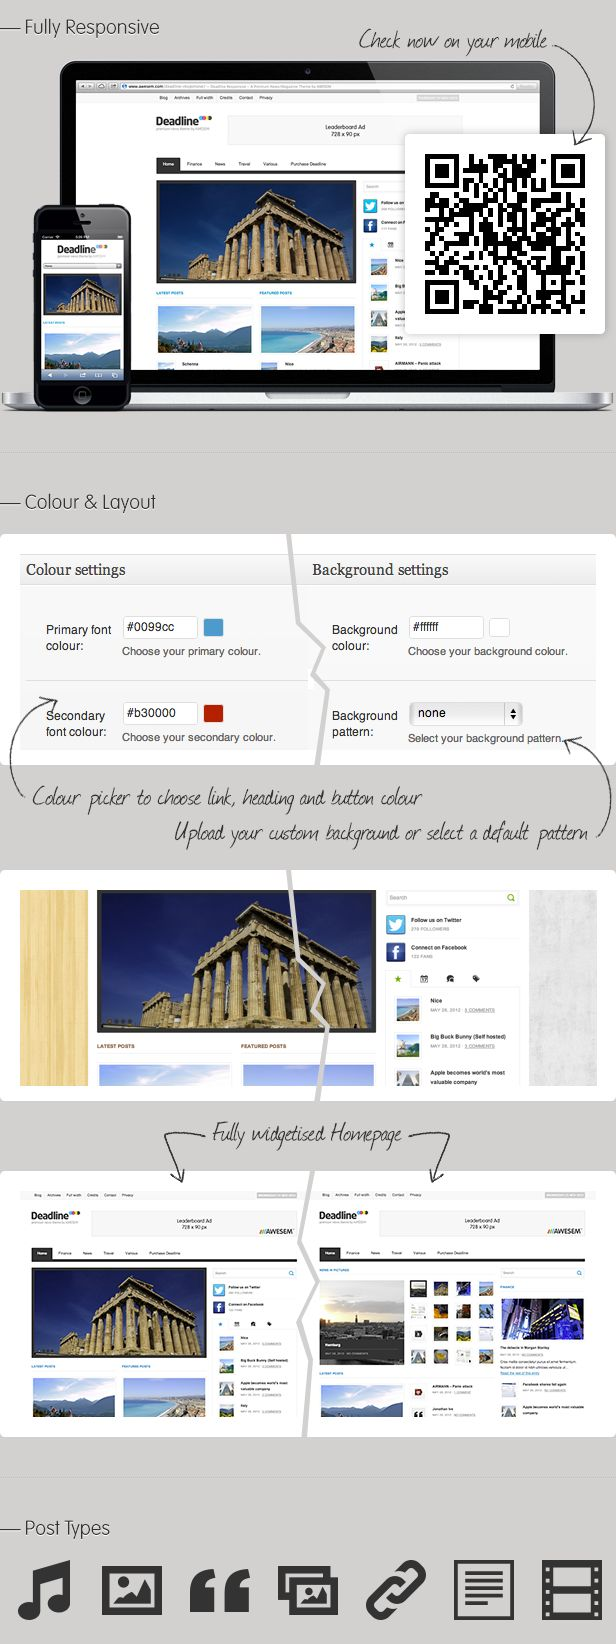 Fully Responsive (Check now on your mobile) - Colour picker to choose link, heading and button colour - Upload your custom background or select a default pattern - Fully widgetised Homepage - Post Types